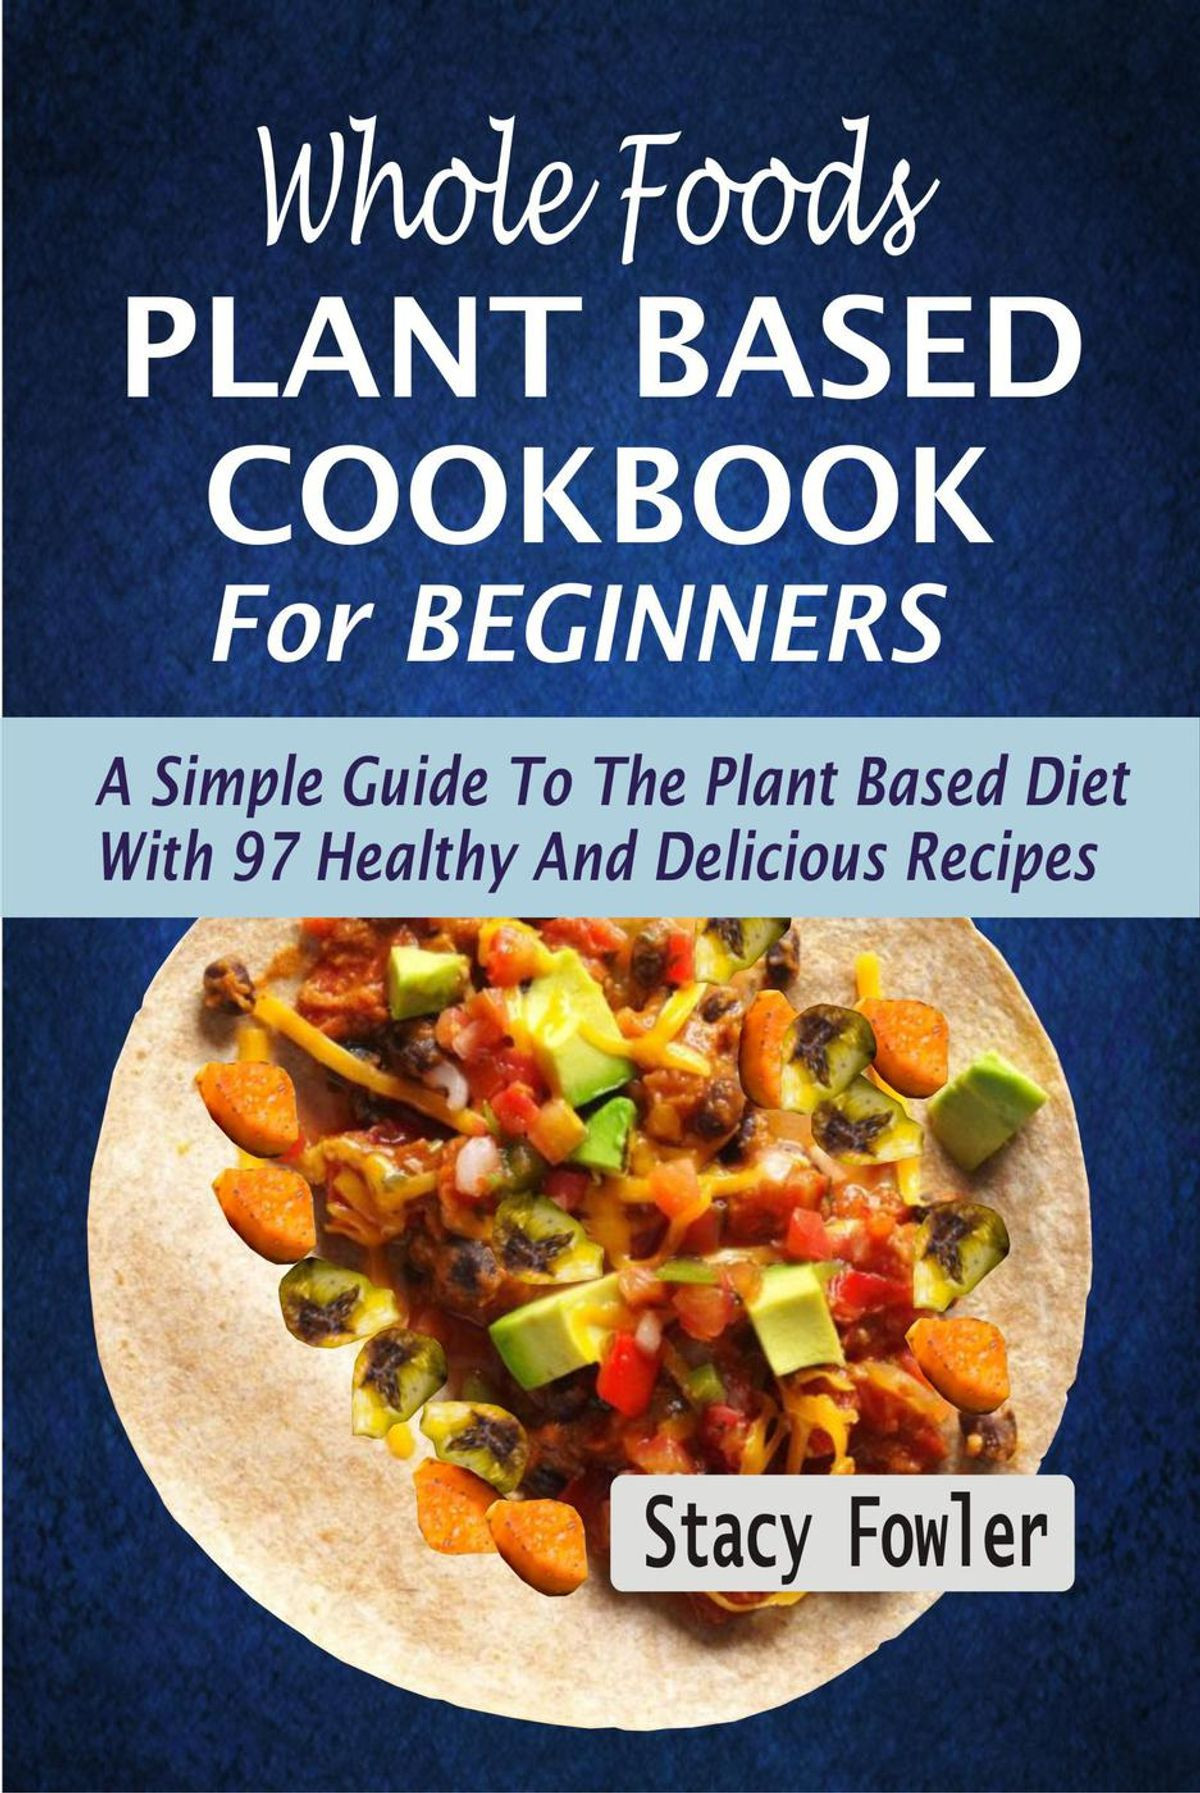 Plant Based Recipes For Beginners Kids  Whole Foods Plant Based Cookbook For Beginners A Simple